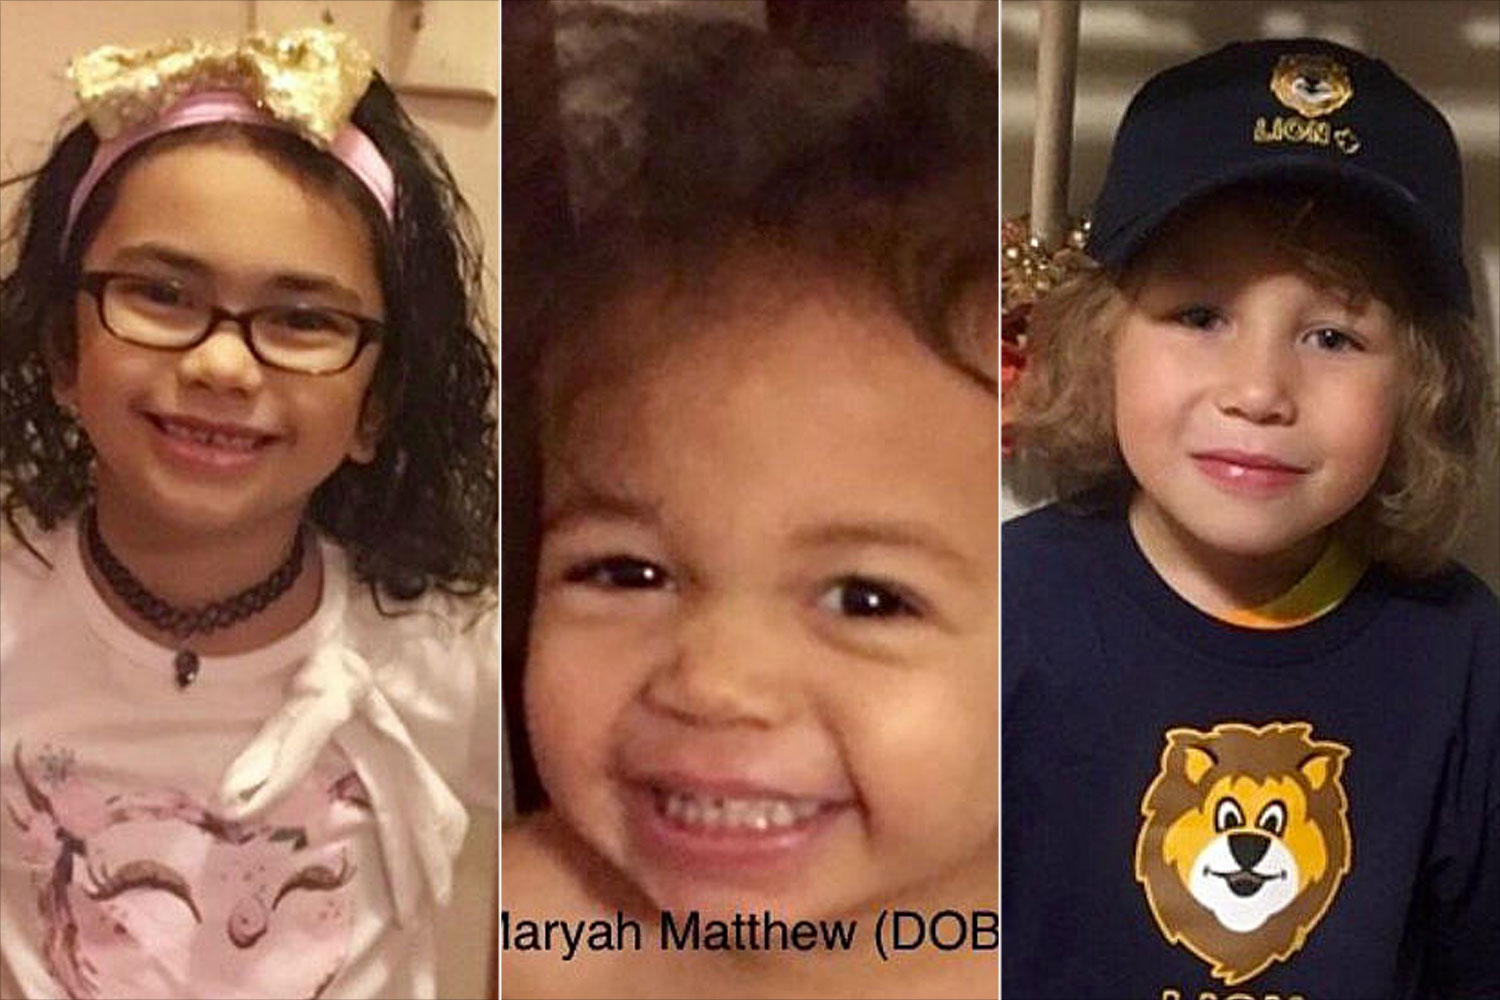 3 Missing Connecticut Children Believed to Be with Convicted Sex Offender, in 'Grave' Danger